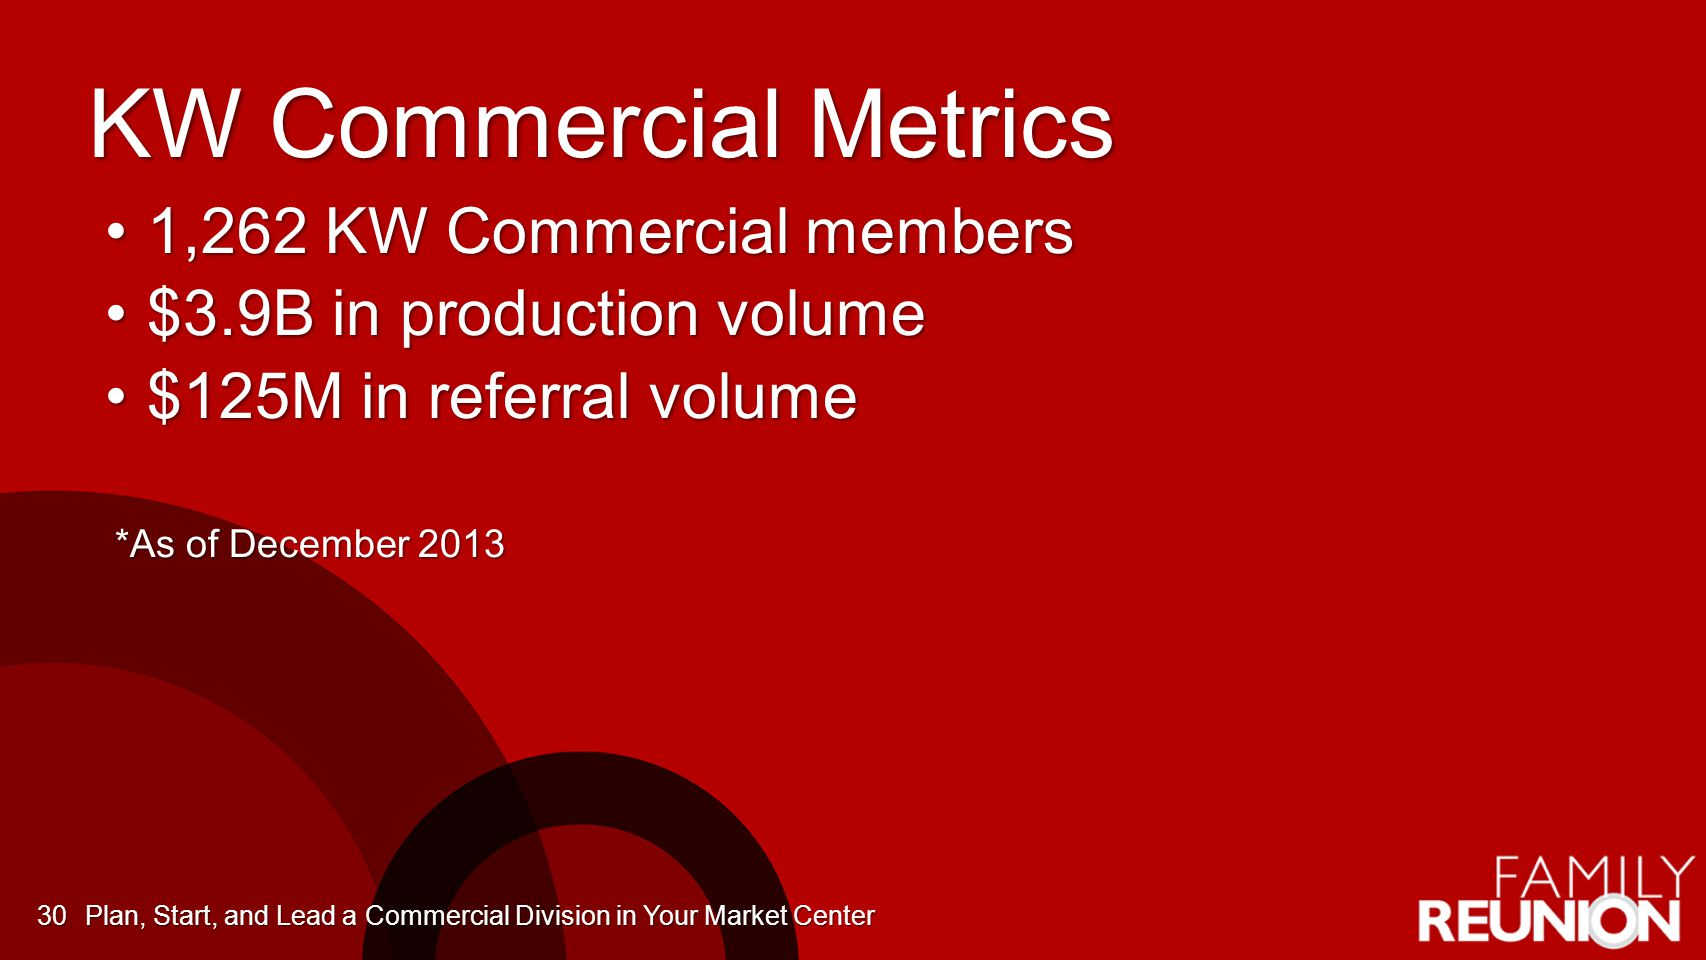 KW Commercial Metrics 1,262 KW Commercial members1,262 KW Commercial members $3.9B in production volume$3.9B in production volume $125M in referral vo